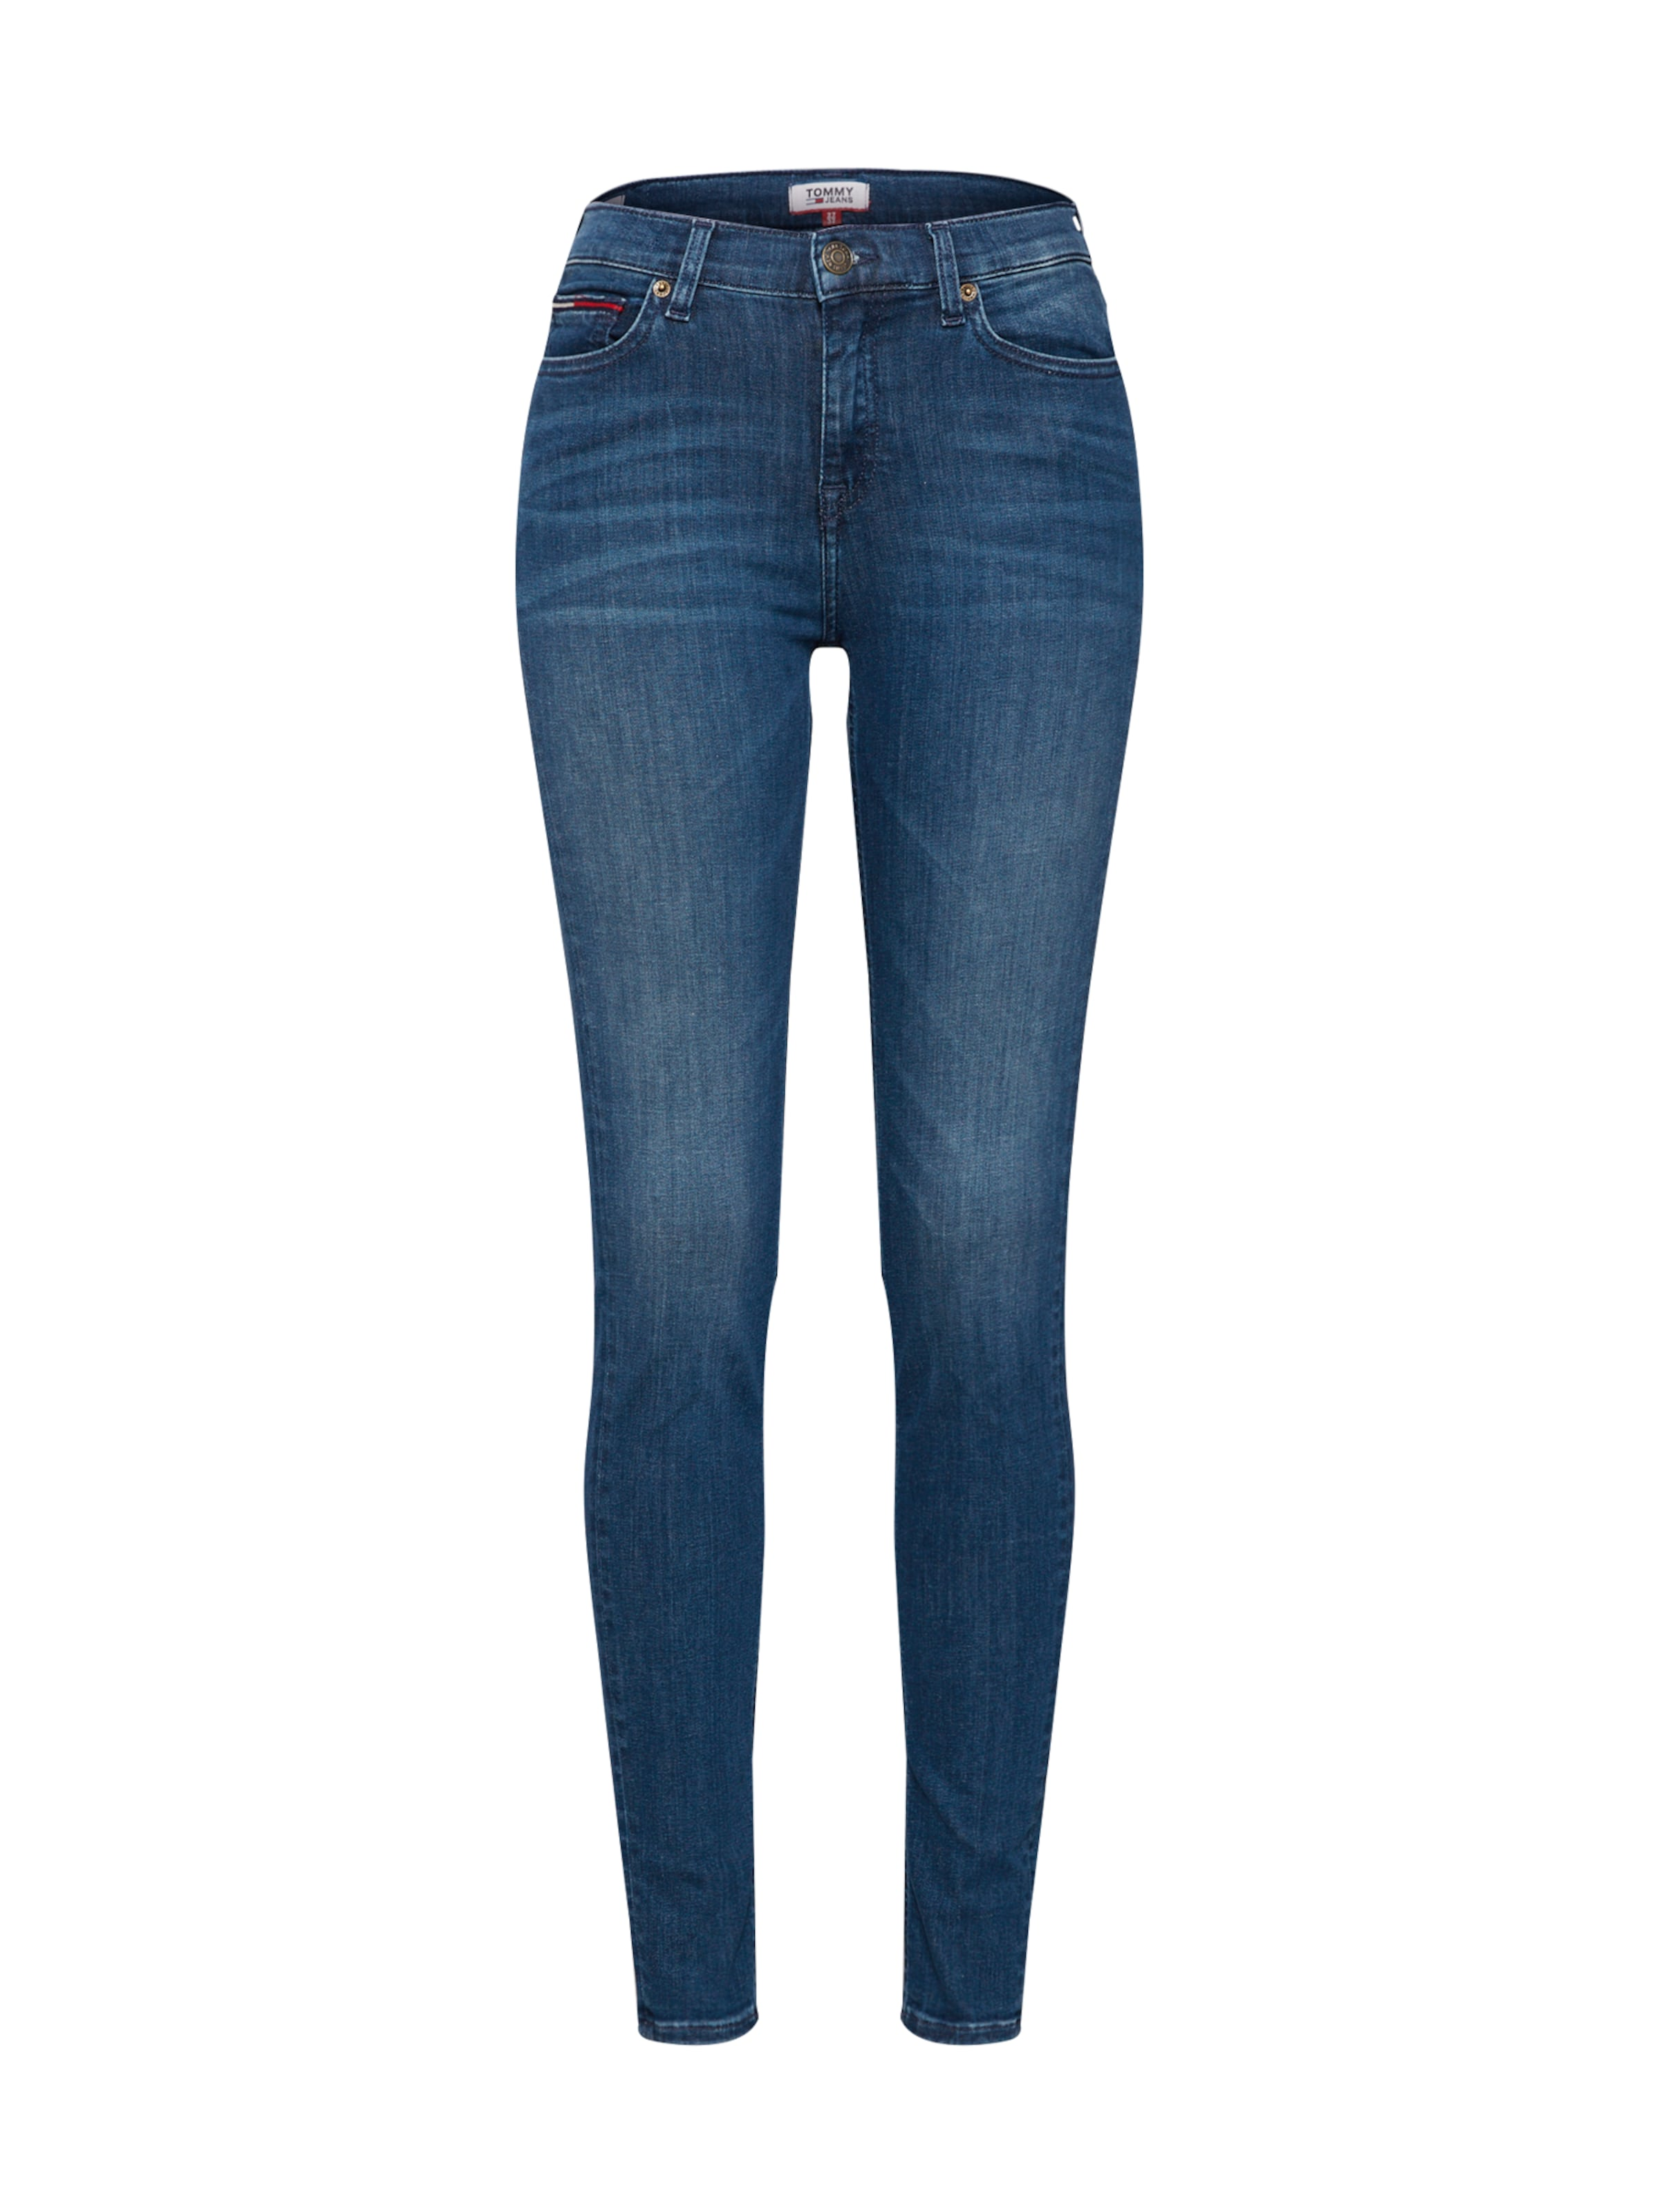 Jeans Skinny Tommy Blue Denim In ' 'nora iukXOwPZlT